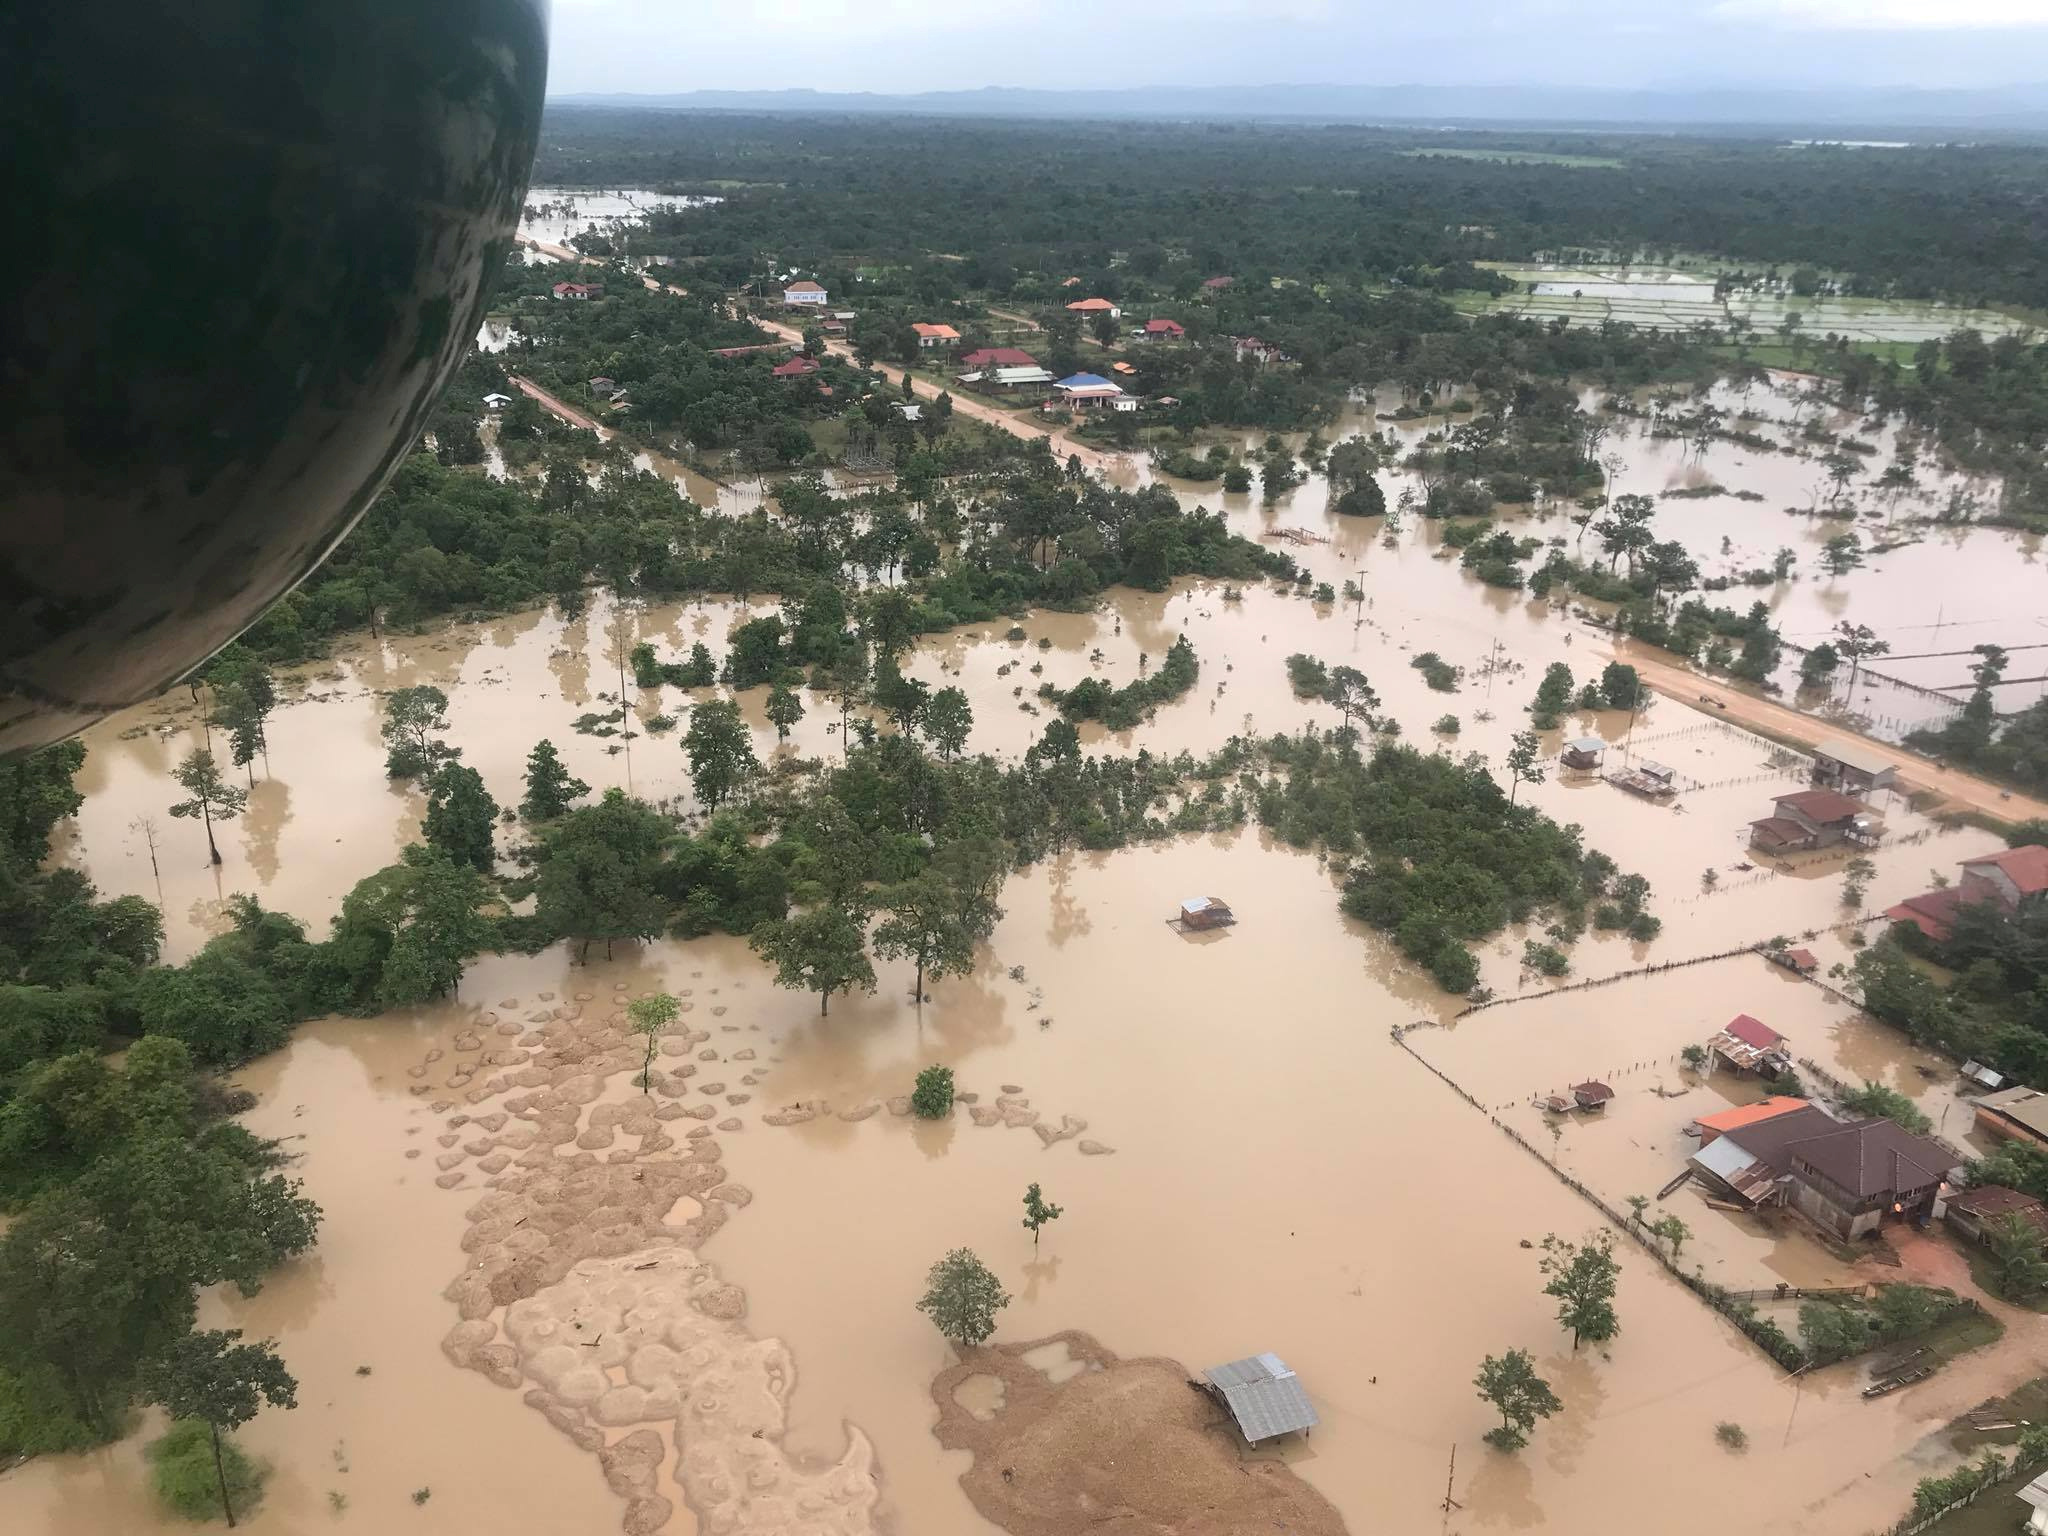 Aerial view shows the flooded area after a dam collapsed in Attapeu province, Laos July 25, 2018 in this image obtained from social media.